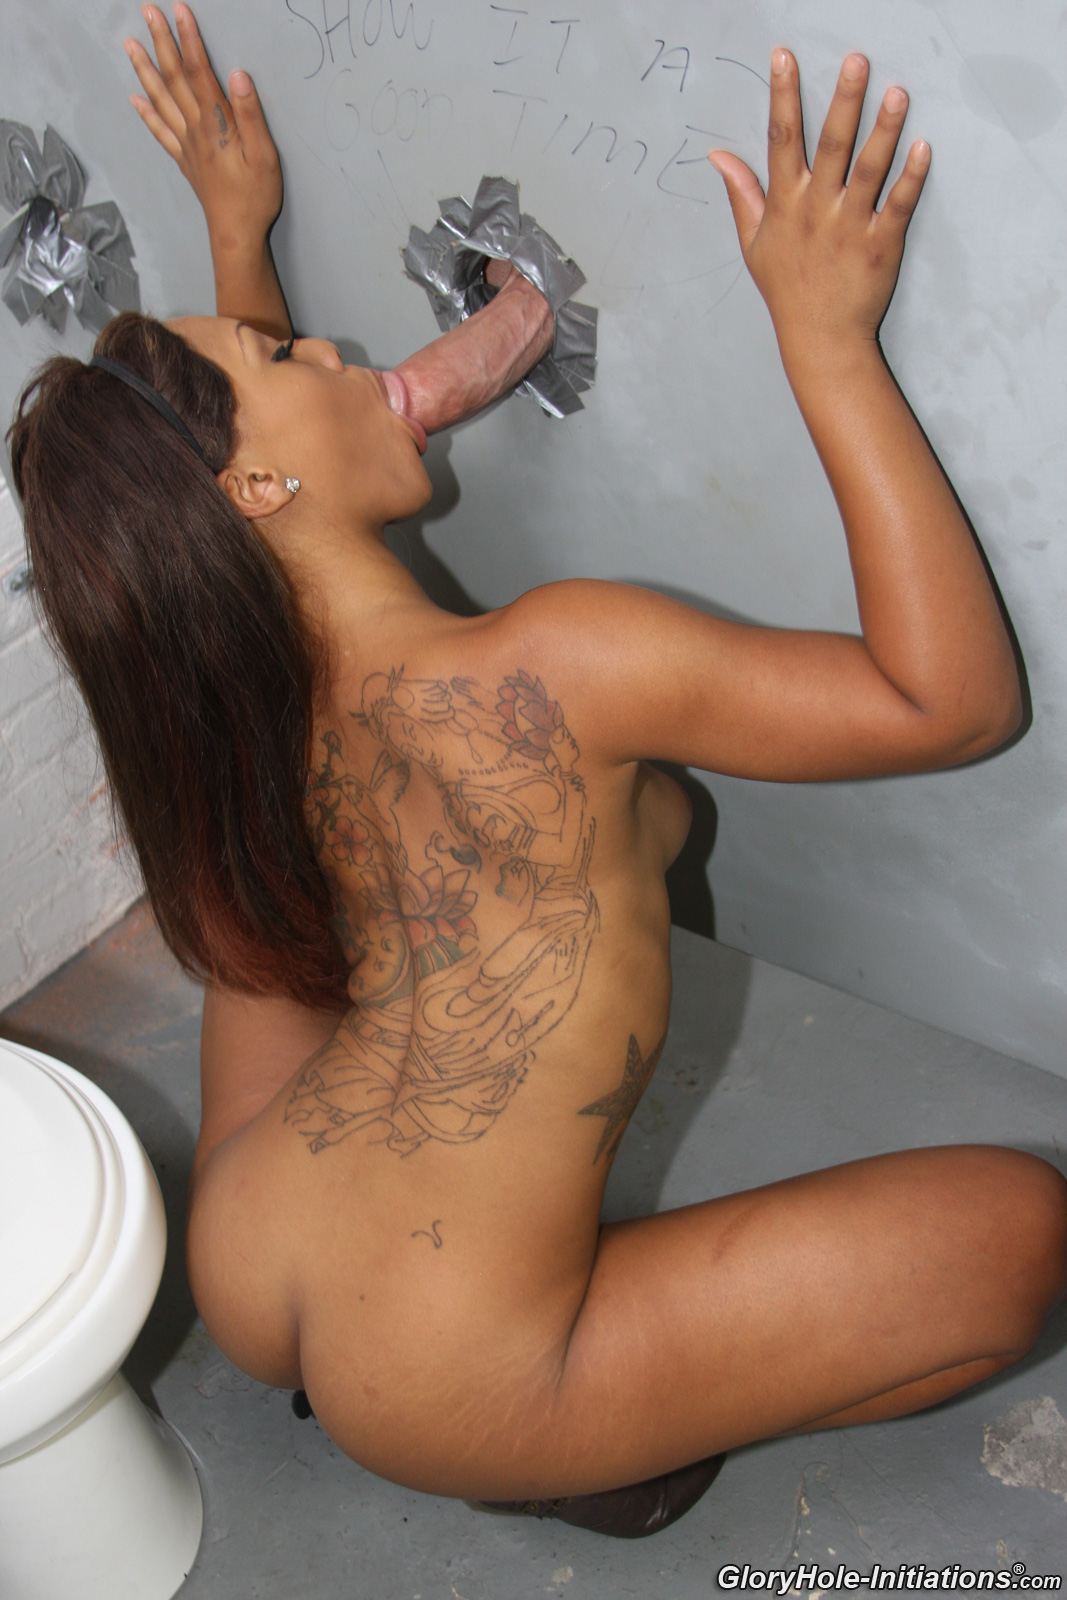 Gloryhole hole anonymous black cocksucking